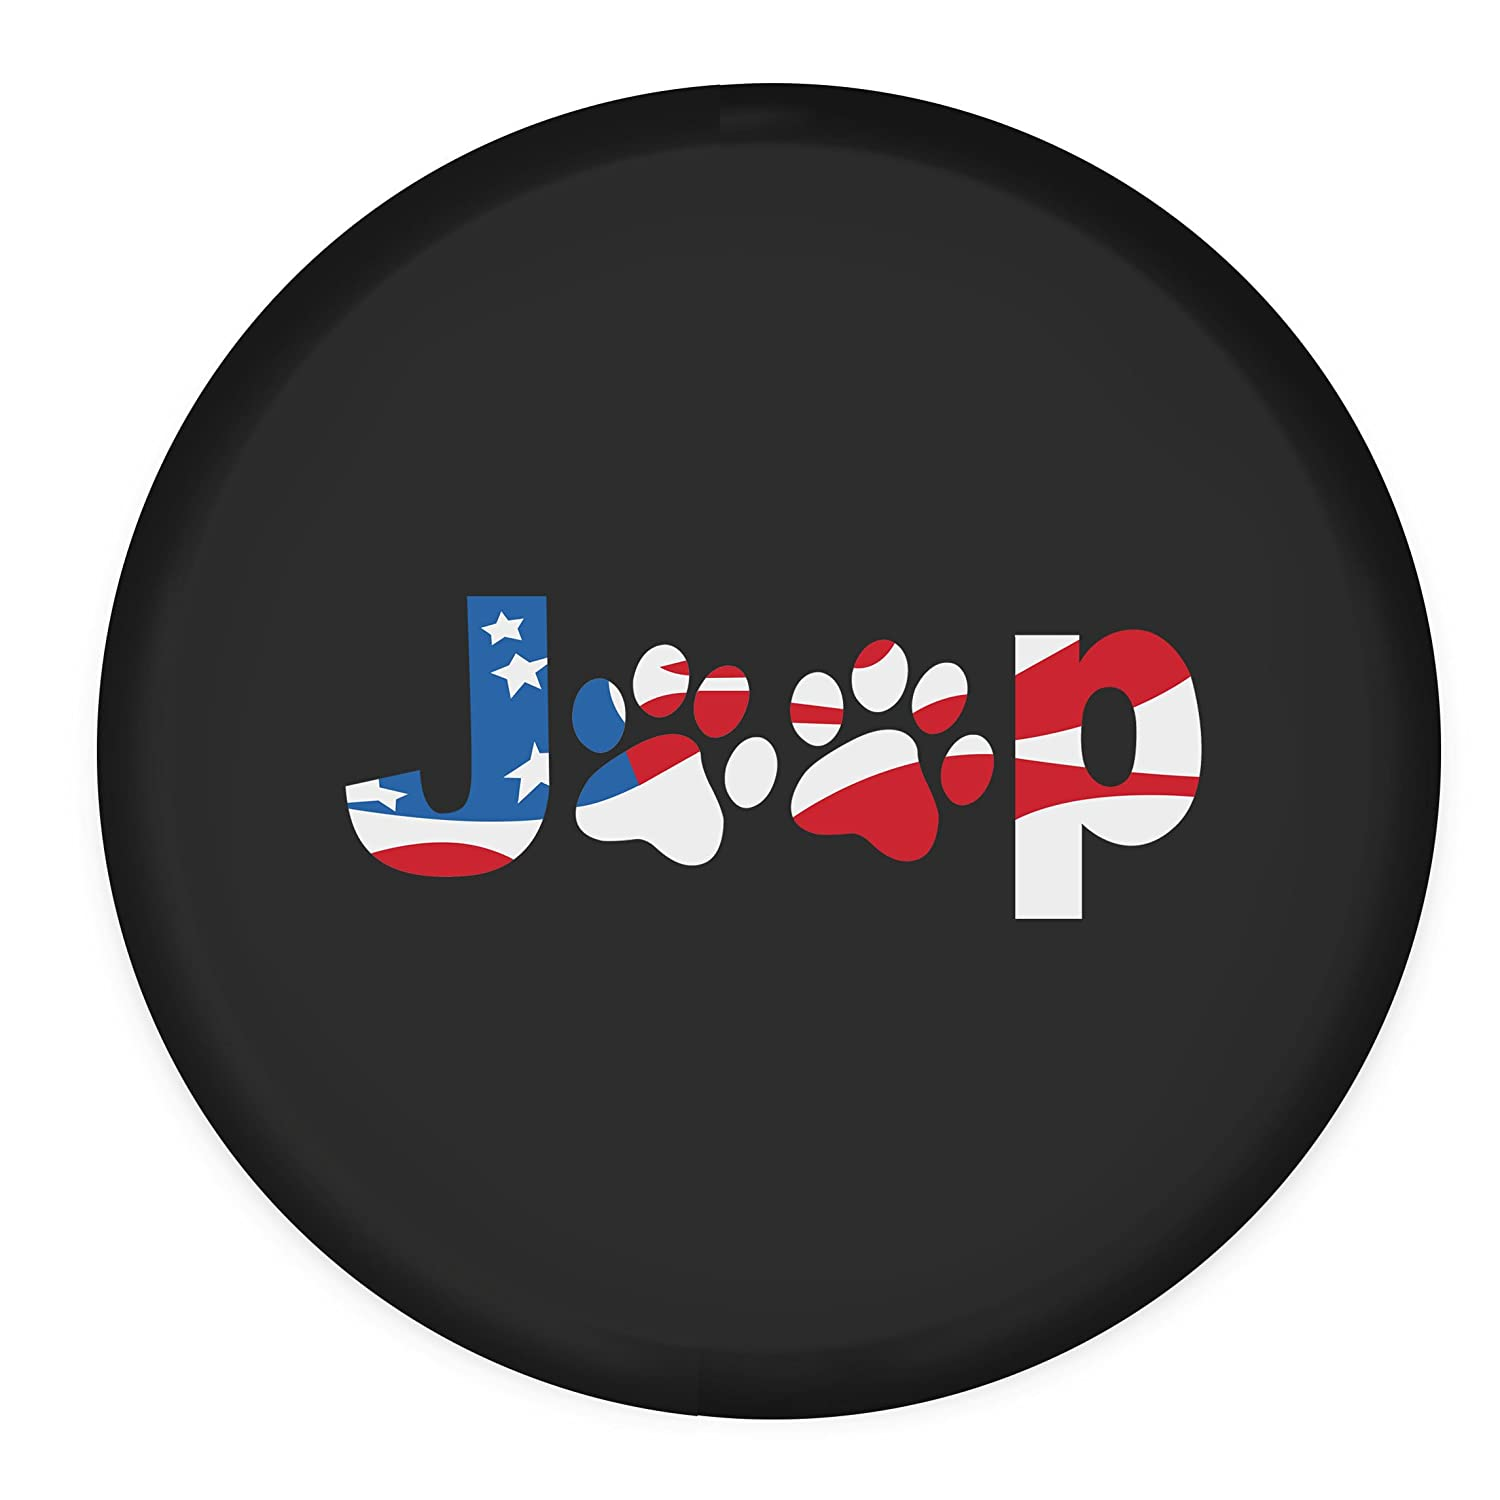 75cm//29.52inch Moonet for RV Liberty Wrangler Spare Wheel Tire Cover with America Flag Dog Paws Logo R15